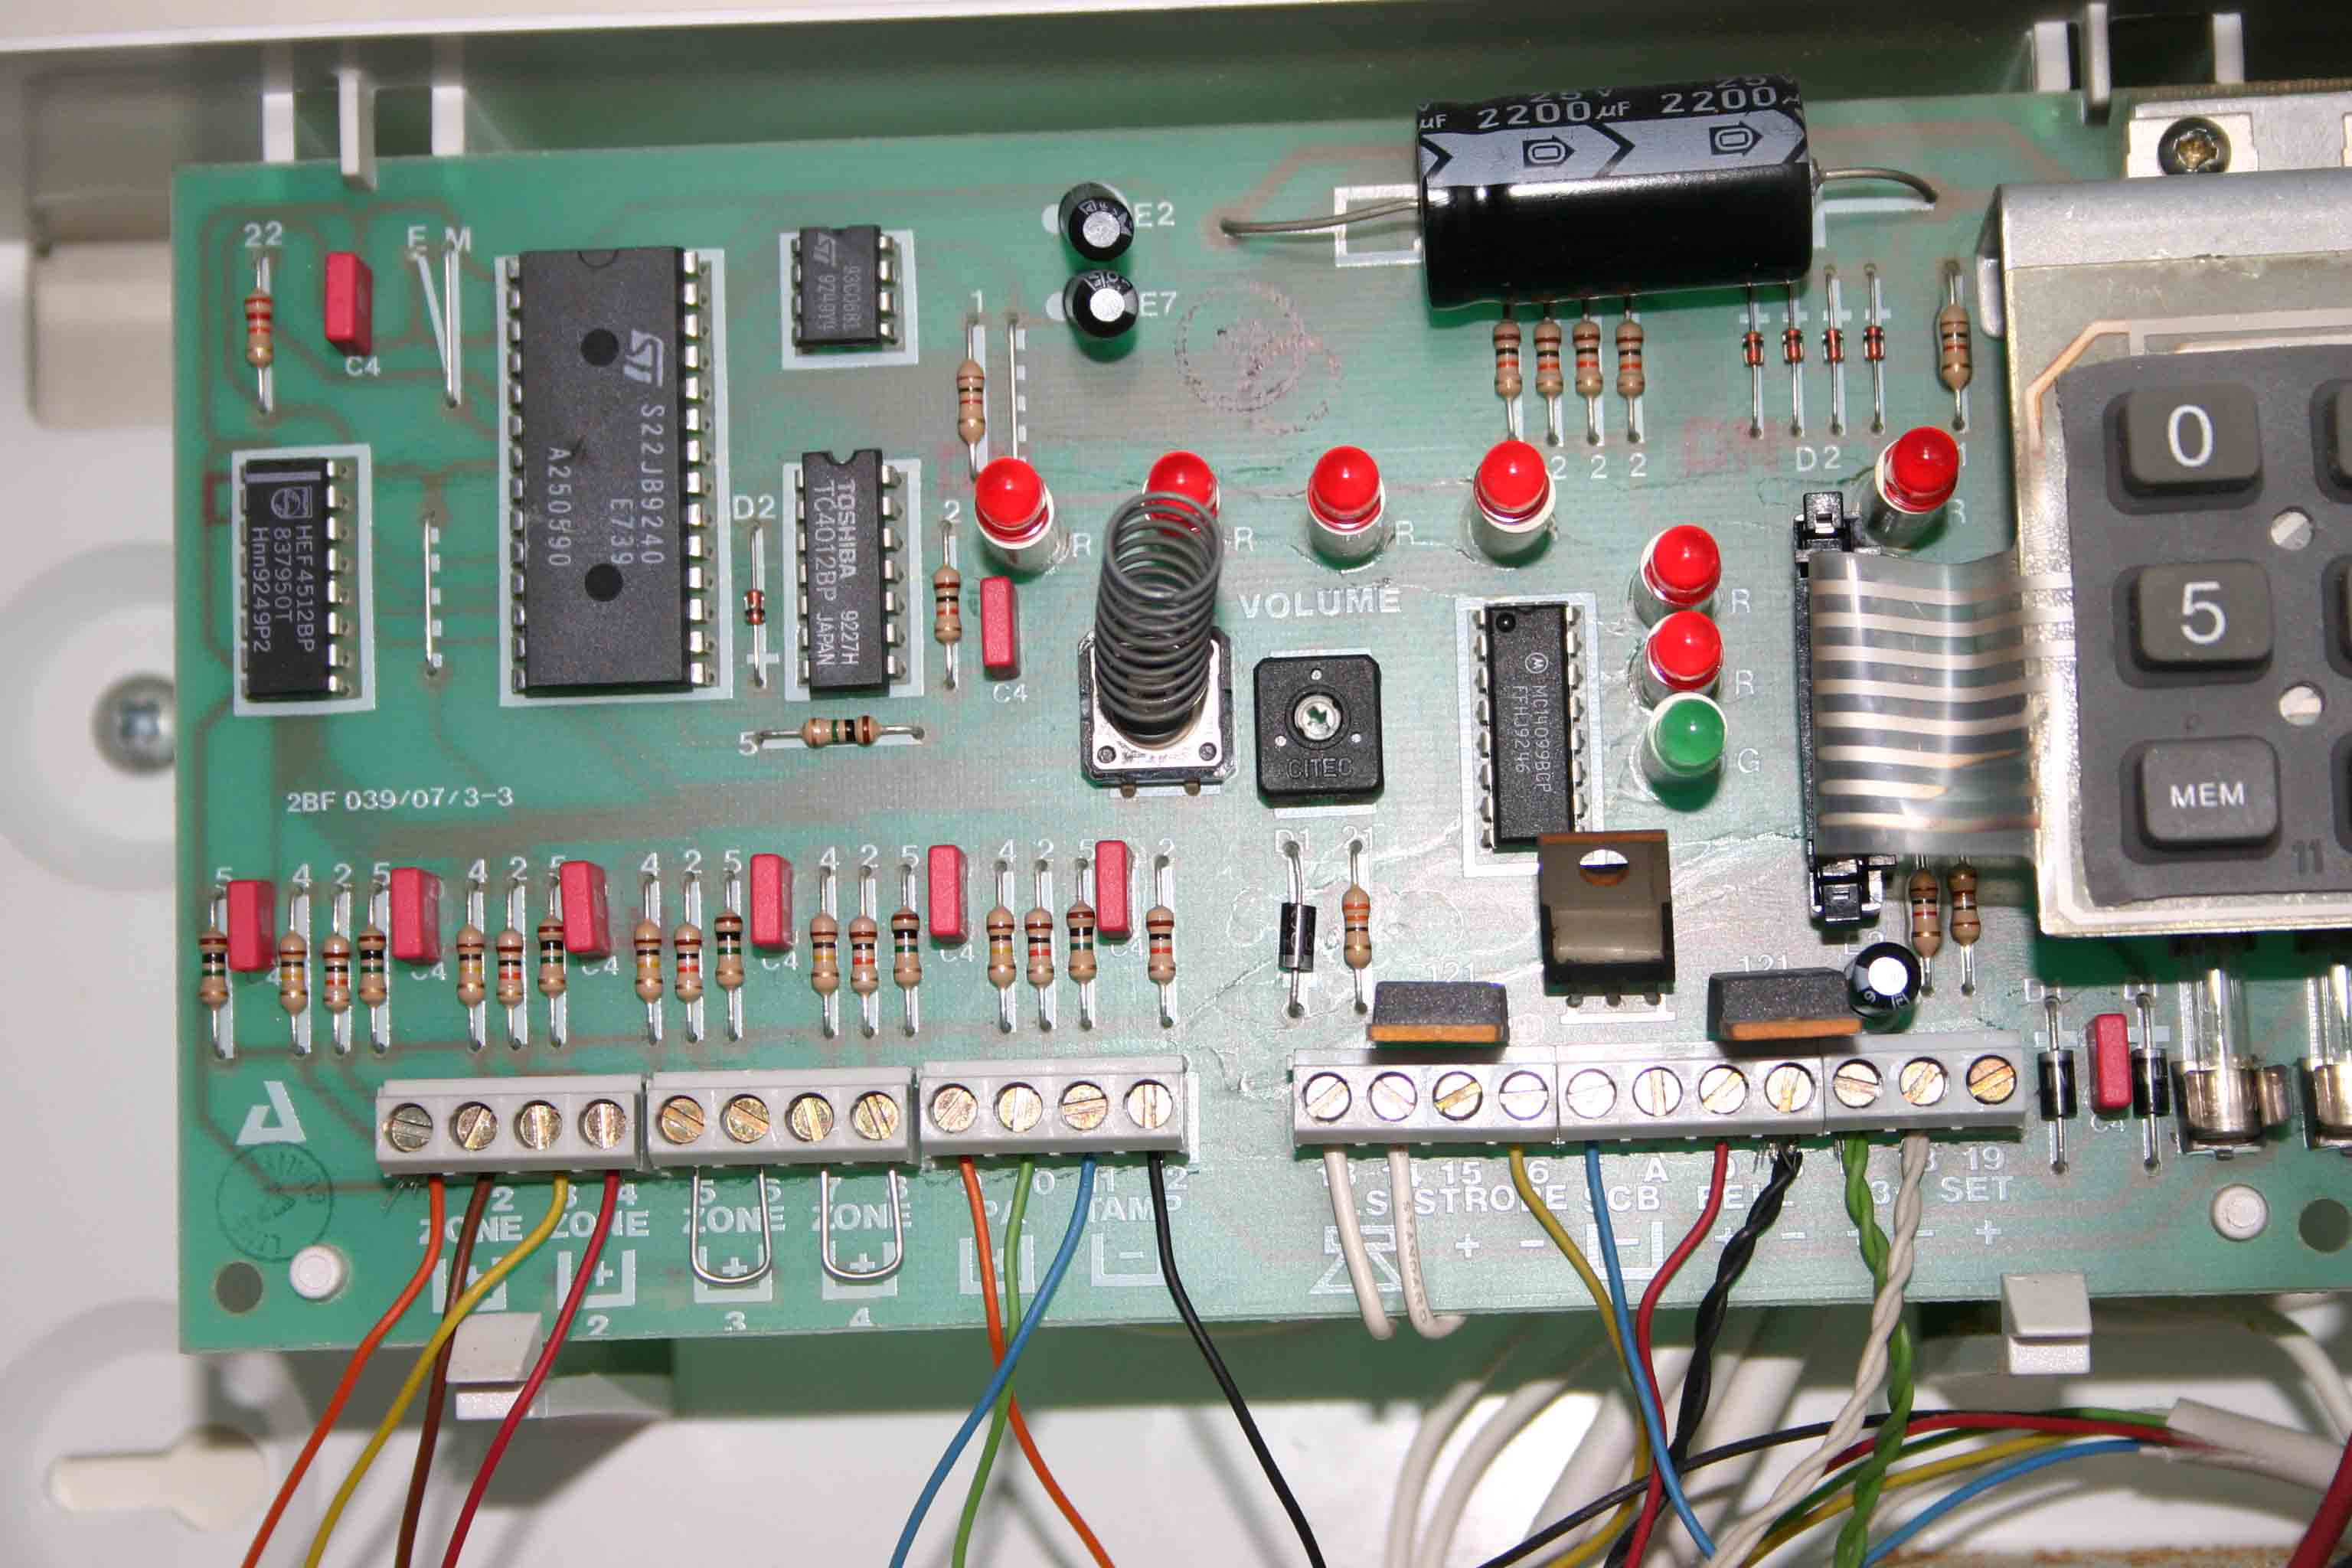 replacing optima xm with g3 control panels public security rh thesecurityinstaller co uk Practical Devices XM6 optima xm6 alarm installation manual